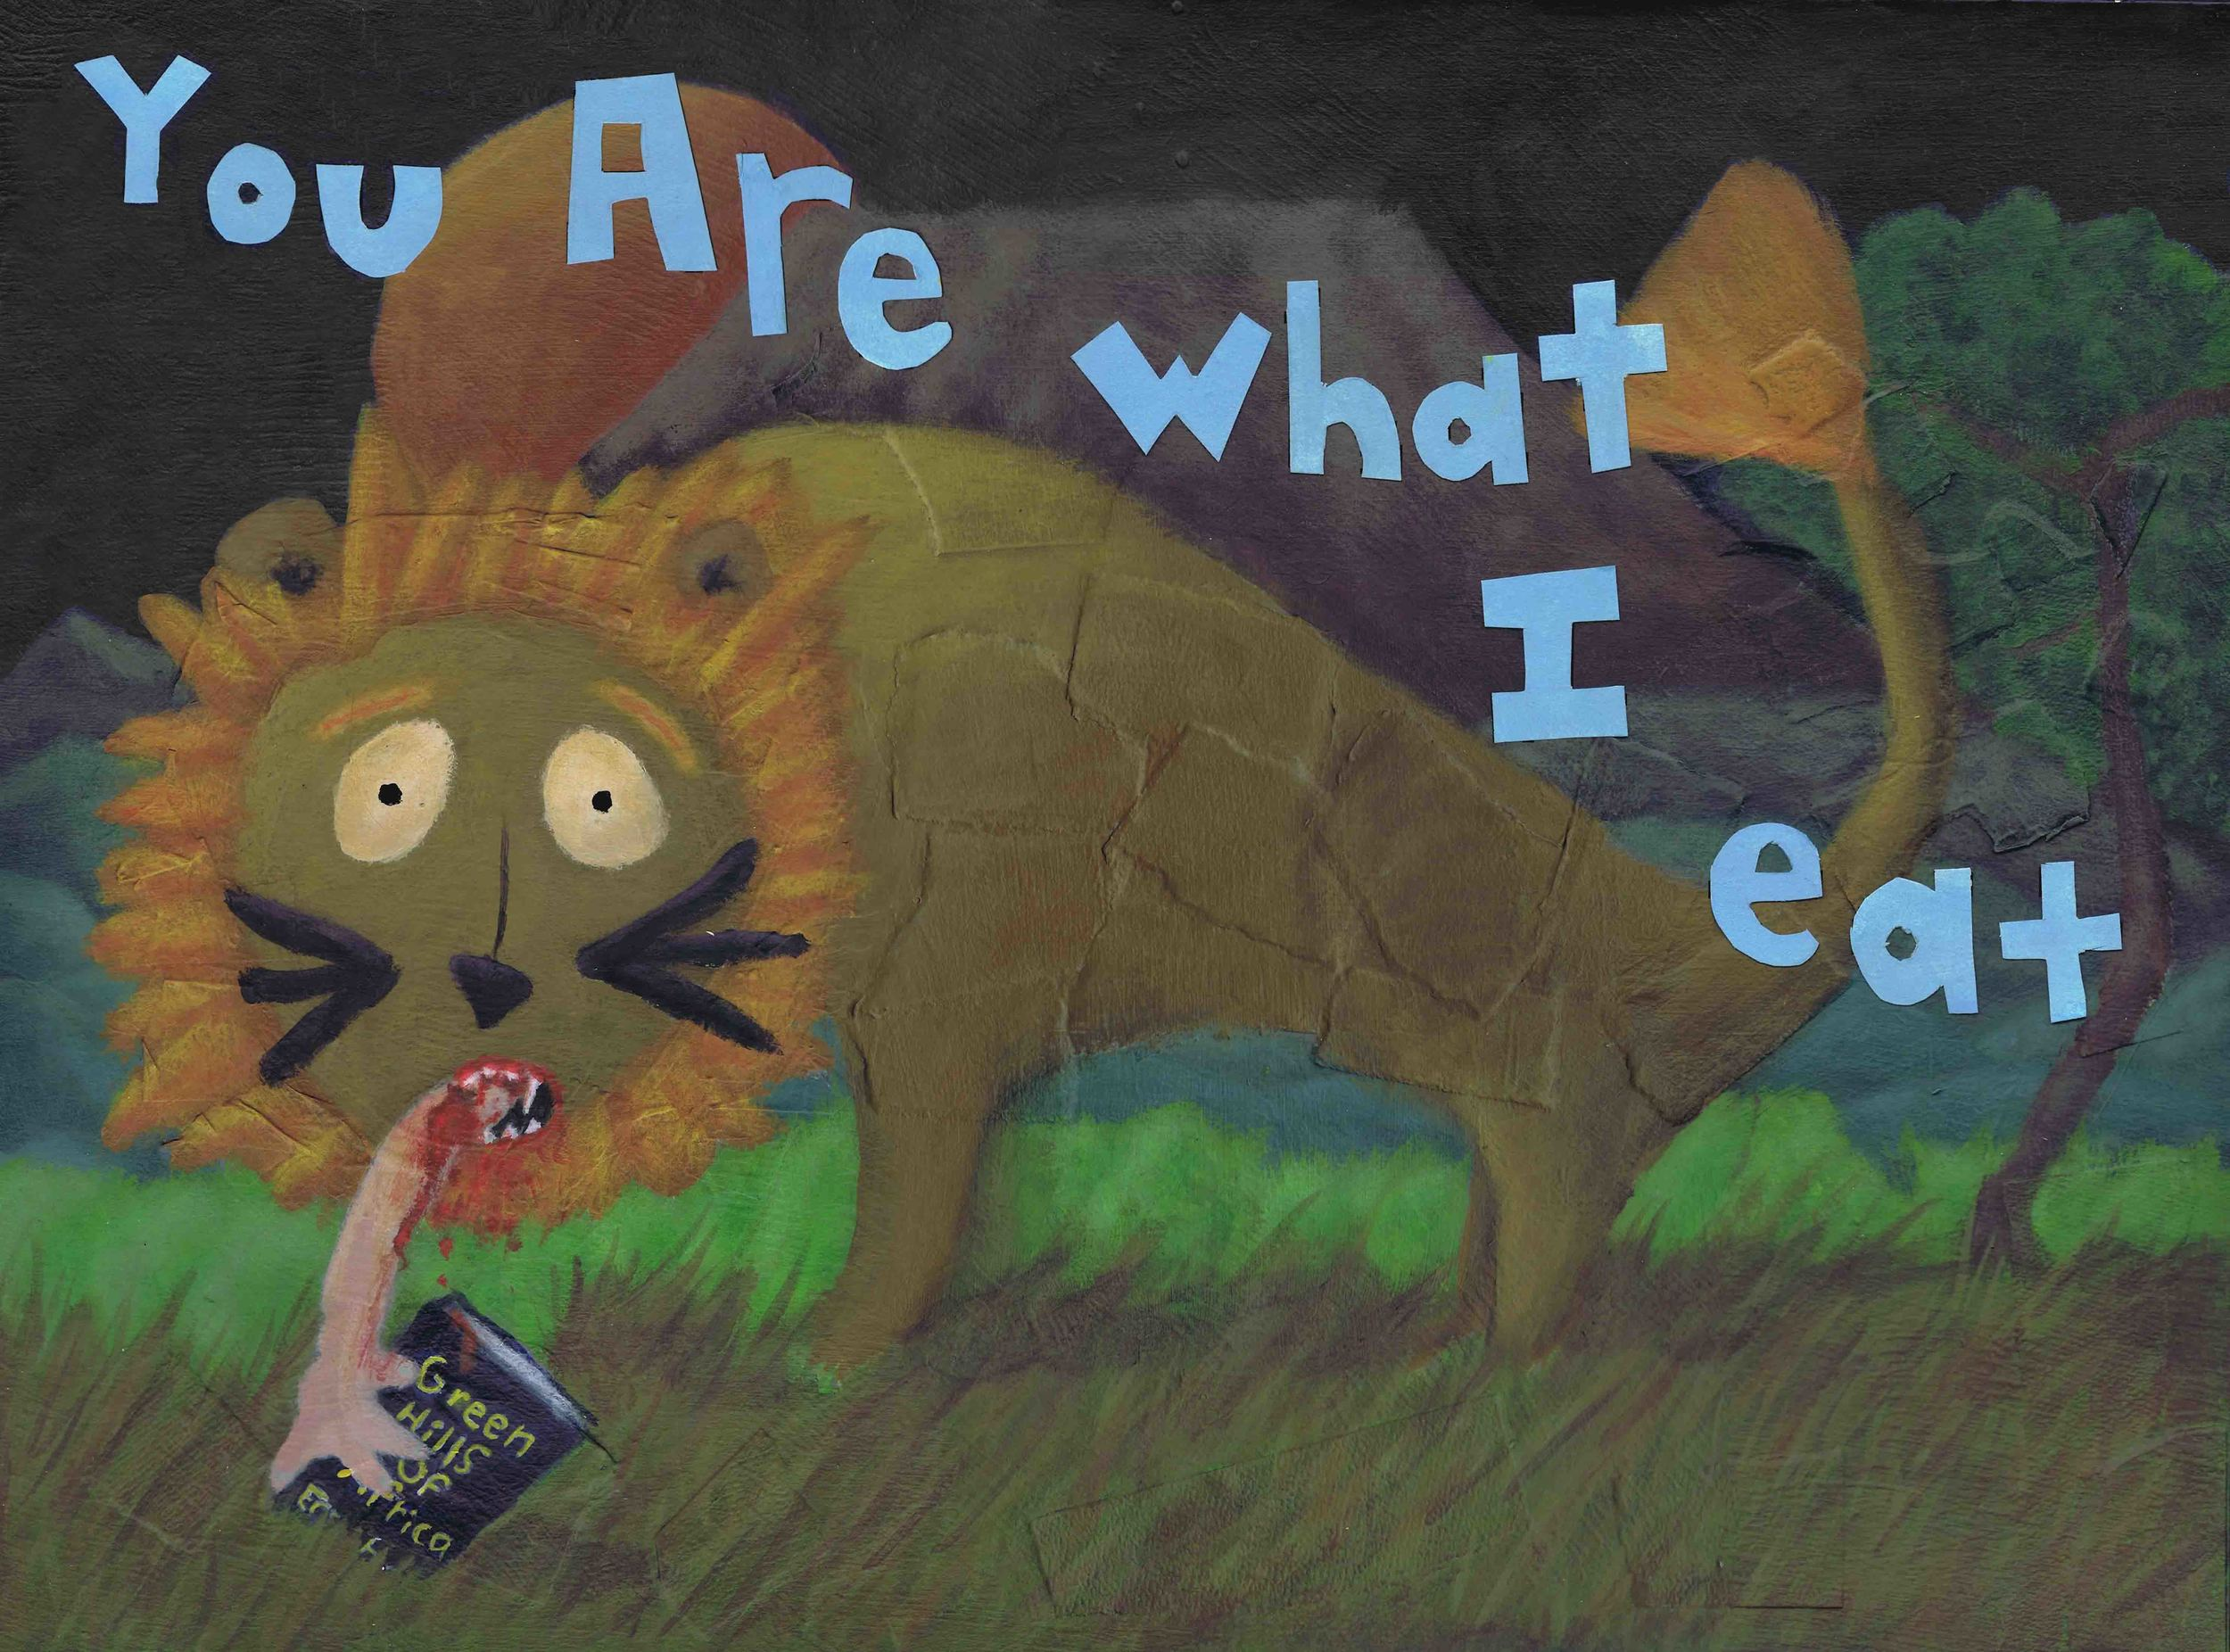 you are what I eat lion final scan.jpg